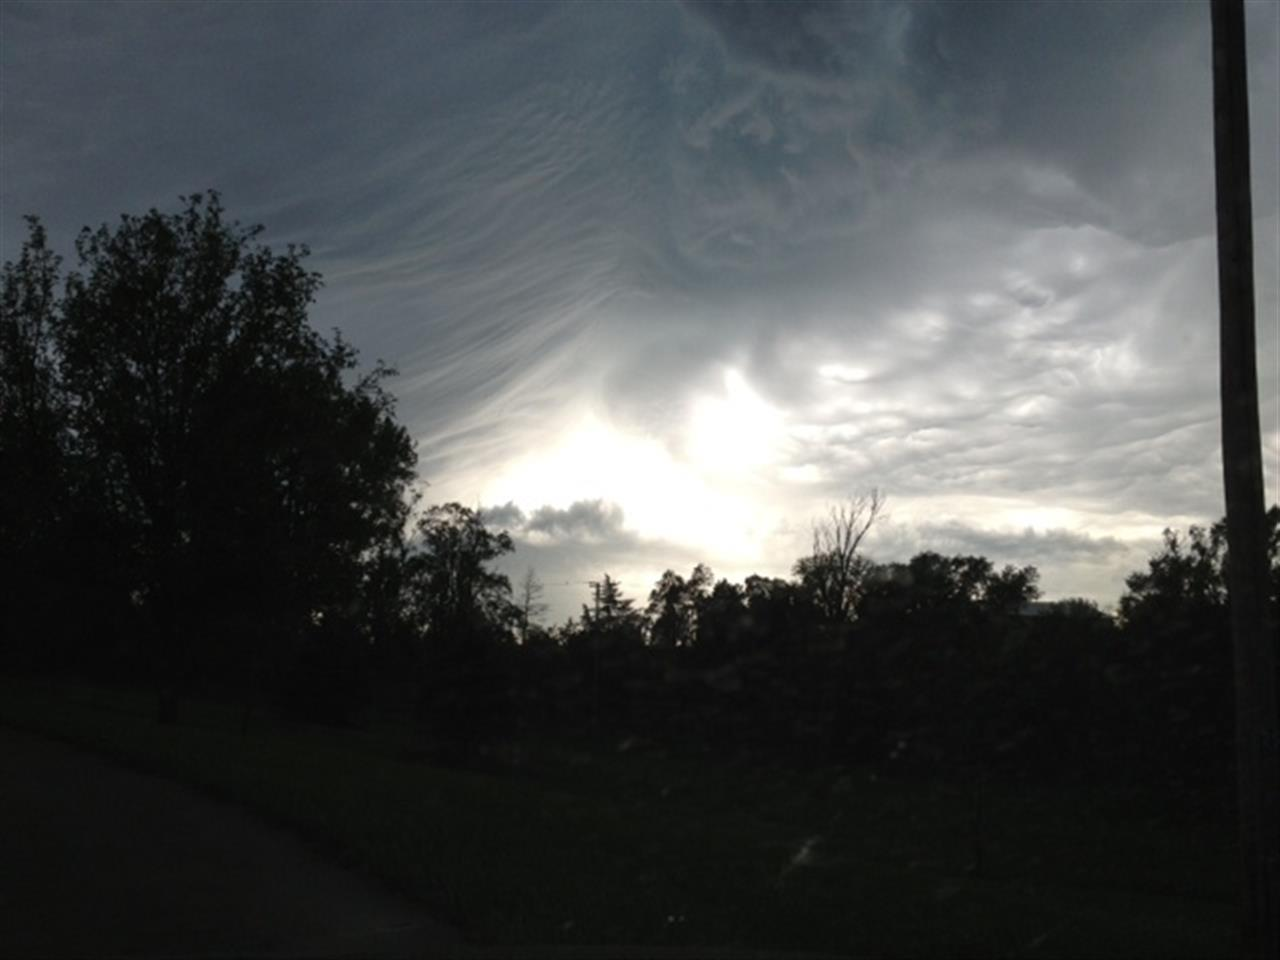 Storm Coming Council Bluffs IA